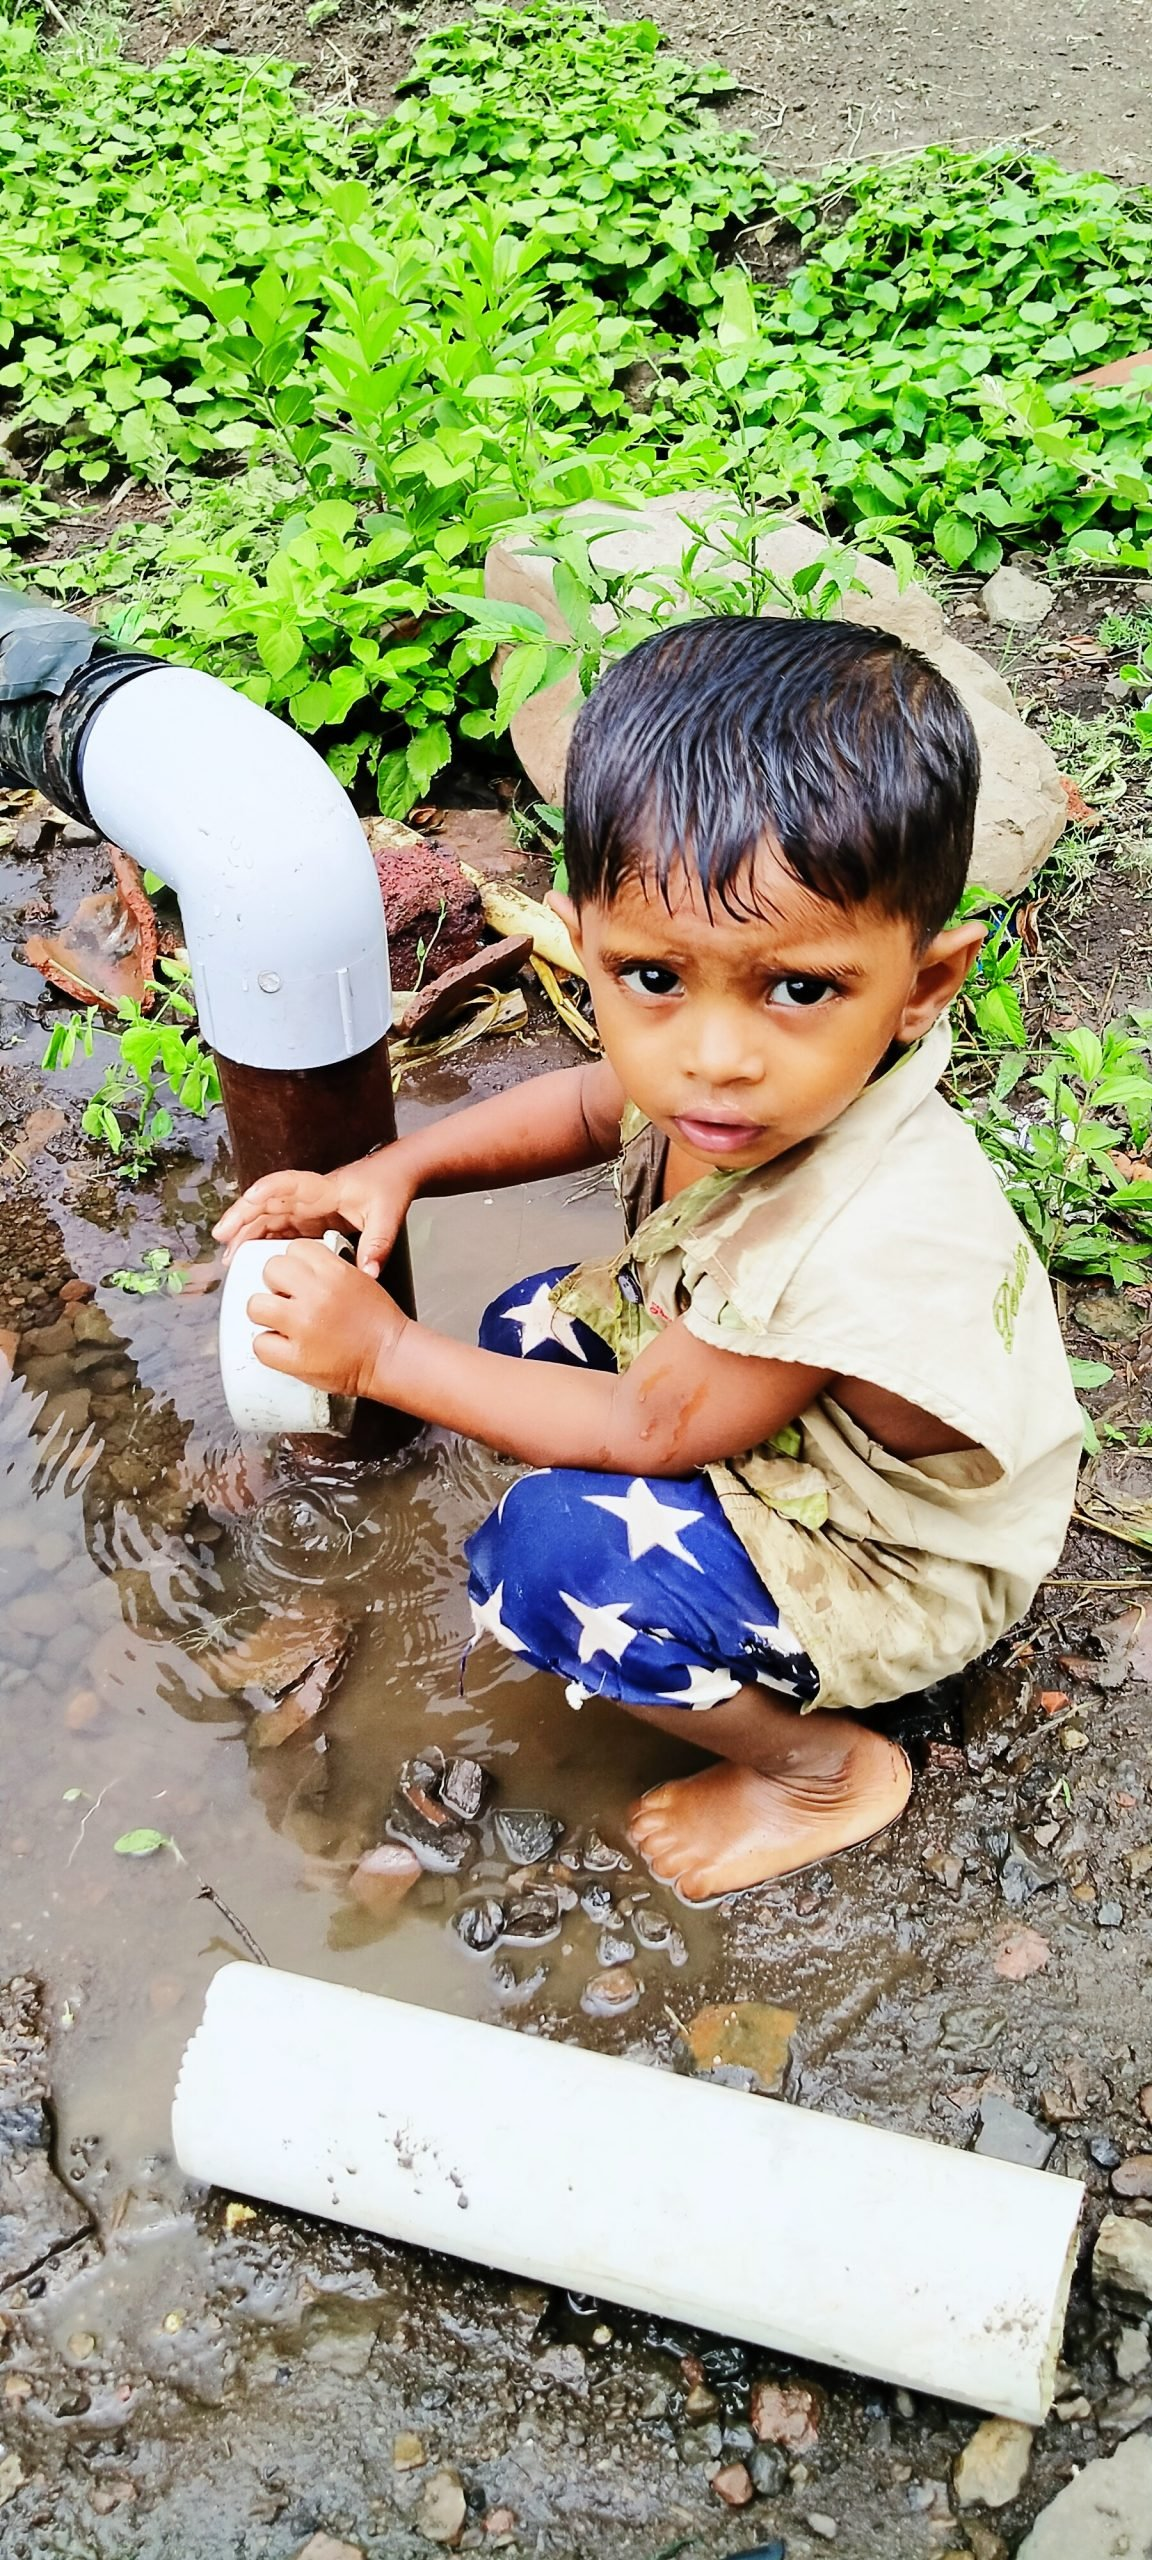 A kid playing with water